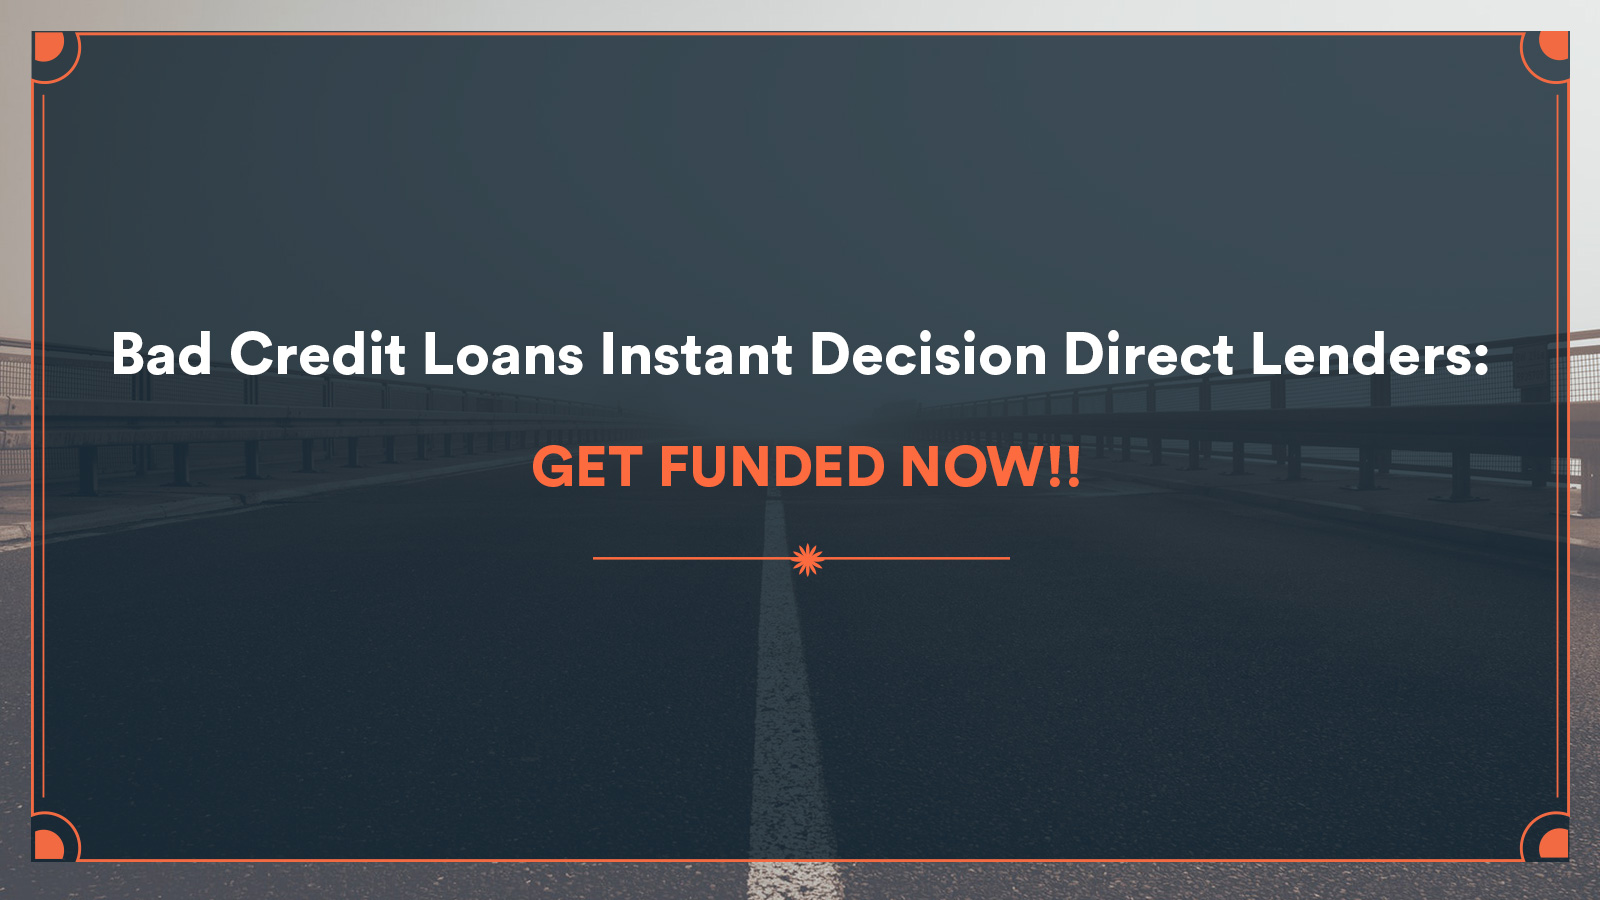 bad credit loans instant decision direct lenders